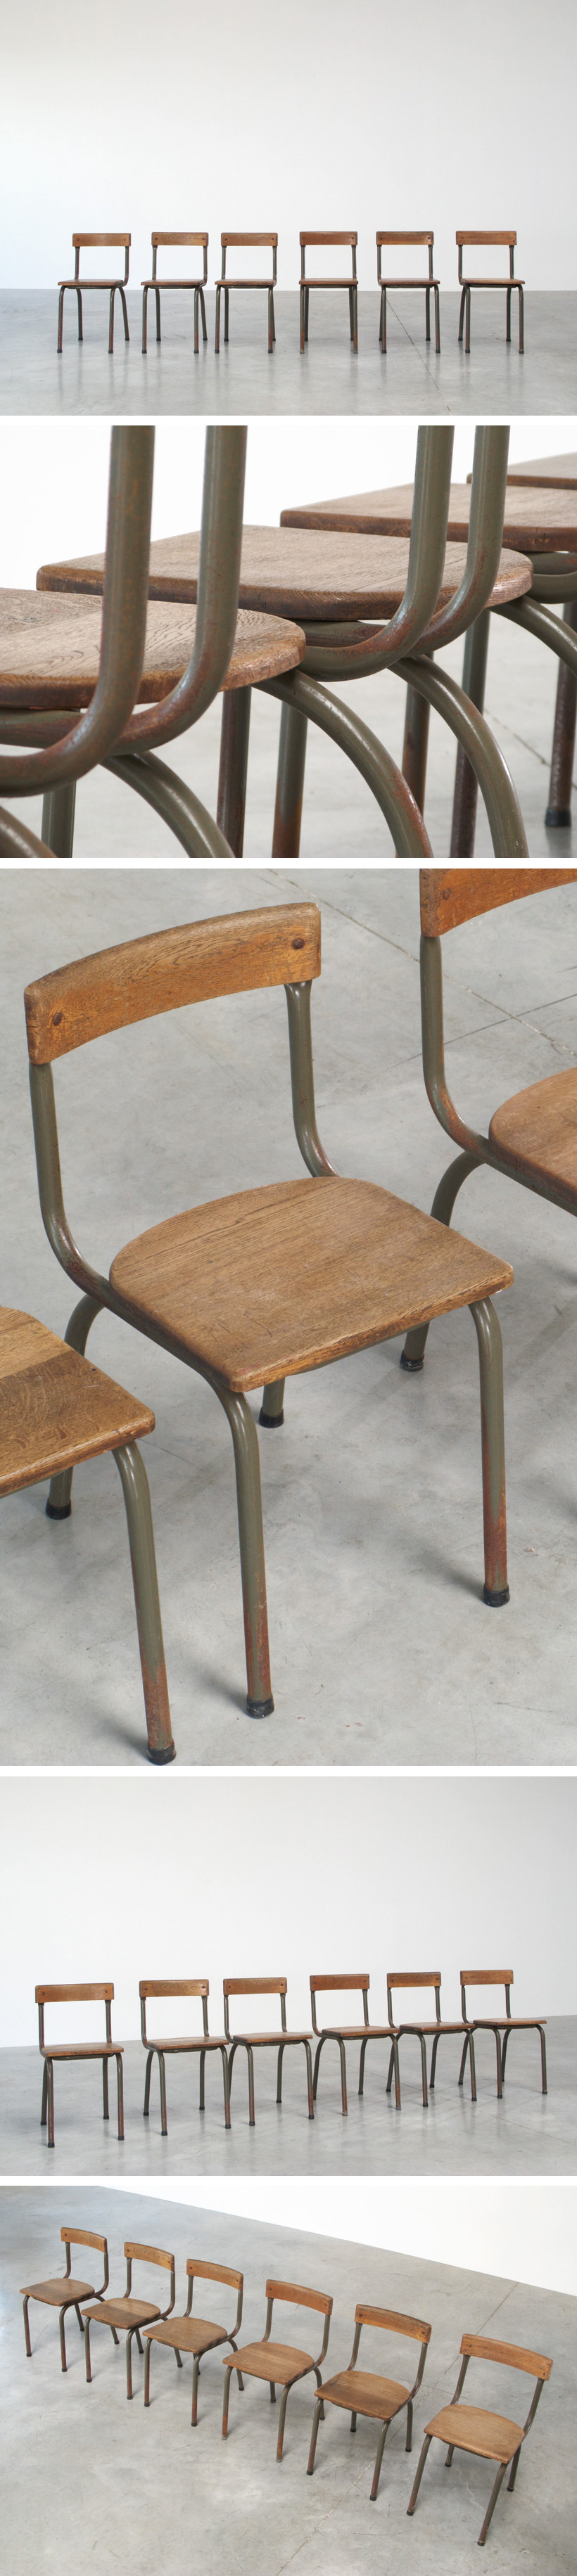 Tubax industrial chairs dated 1957 Large